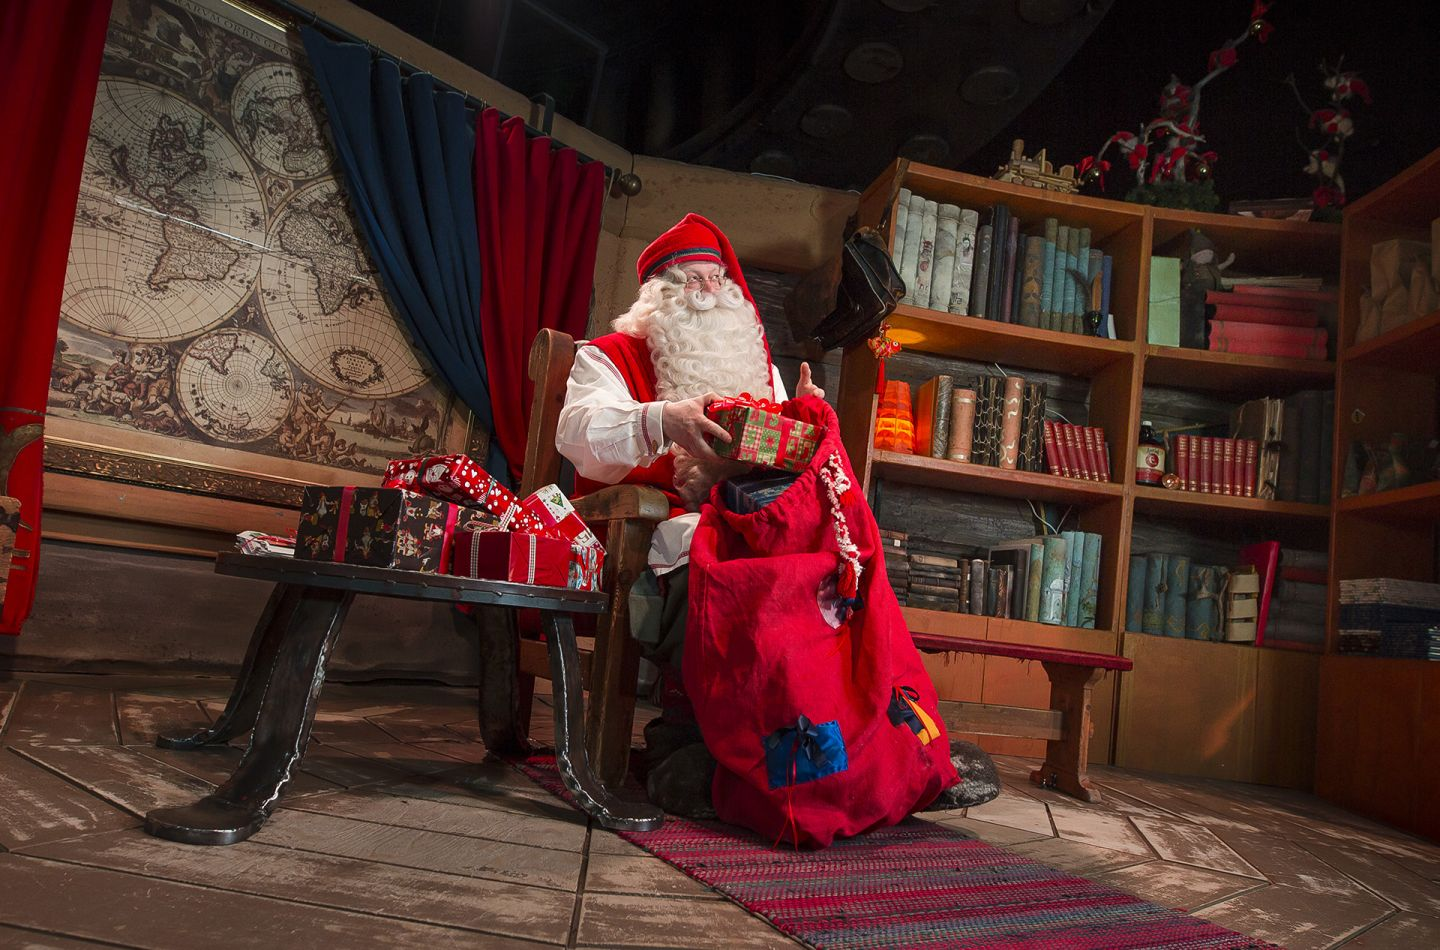 Santa Claus with his gift sack in his office in Rovaniemi, Finland